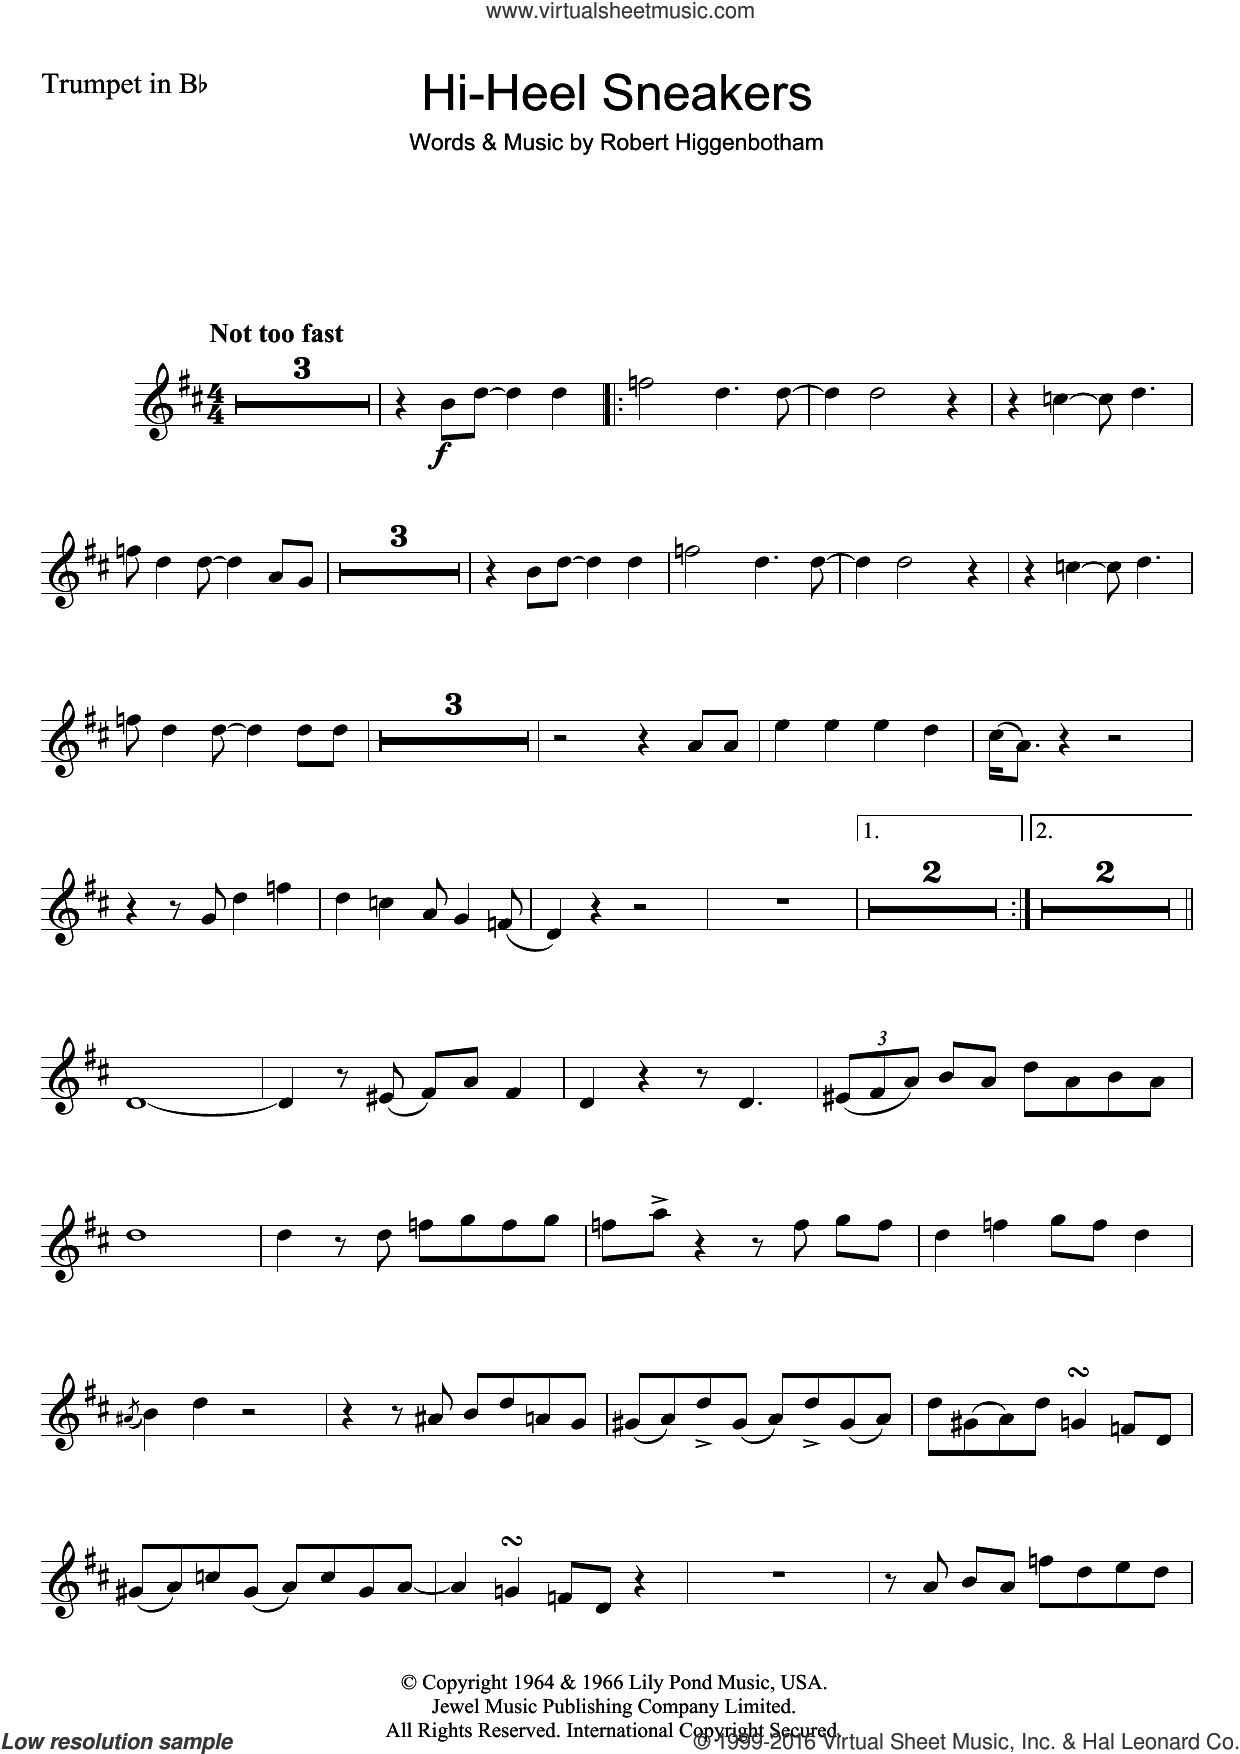 Hi-Heel Sneakers sheet music for trumpet solo by Tommy Tucker. Score Image Preview.